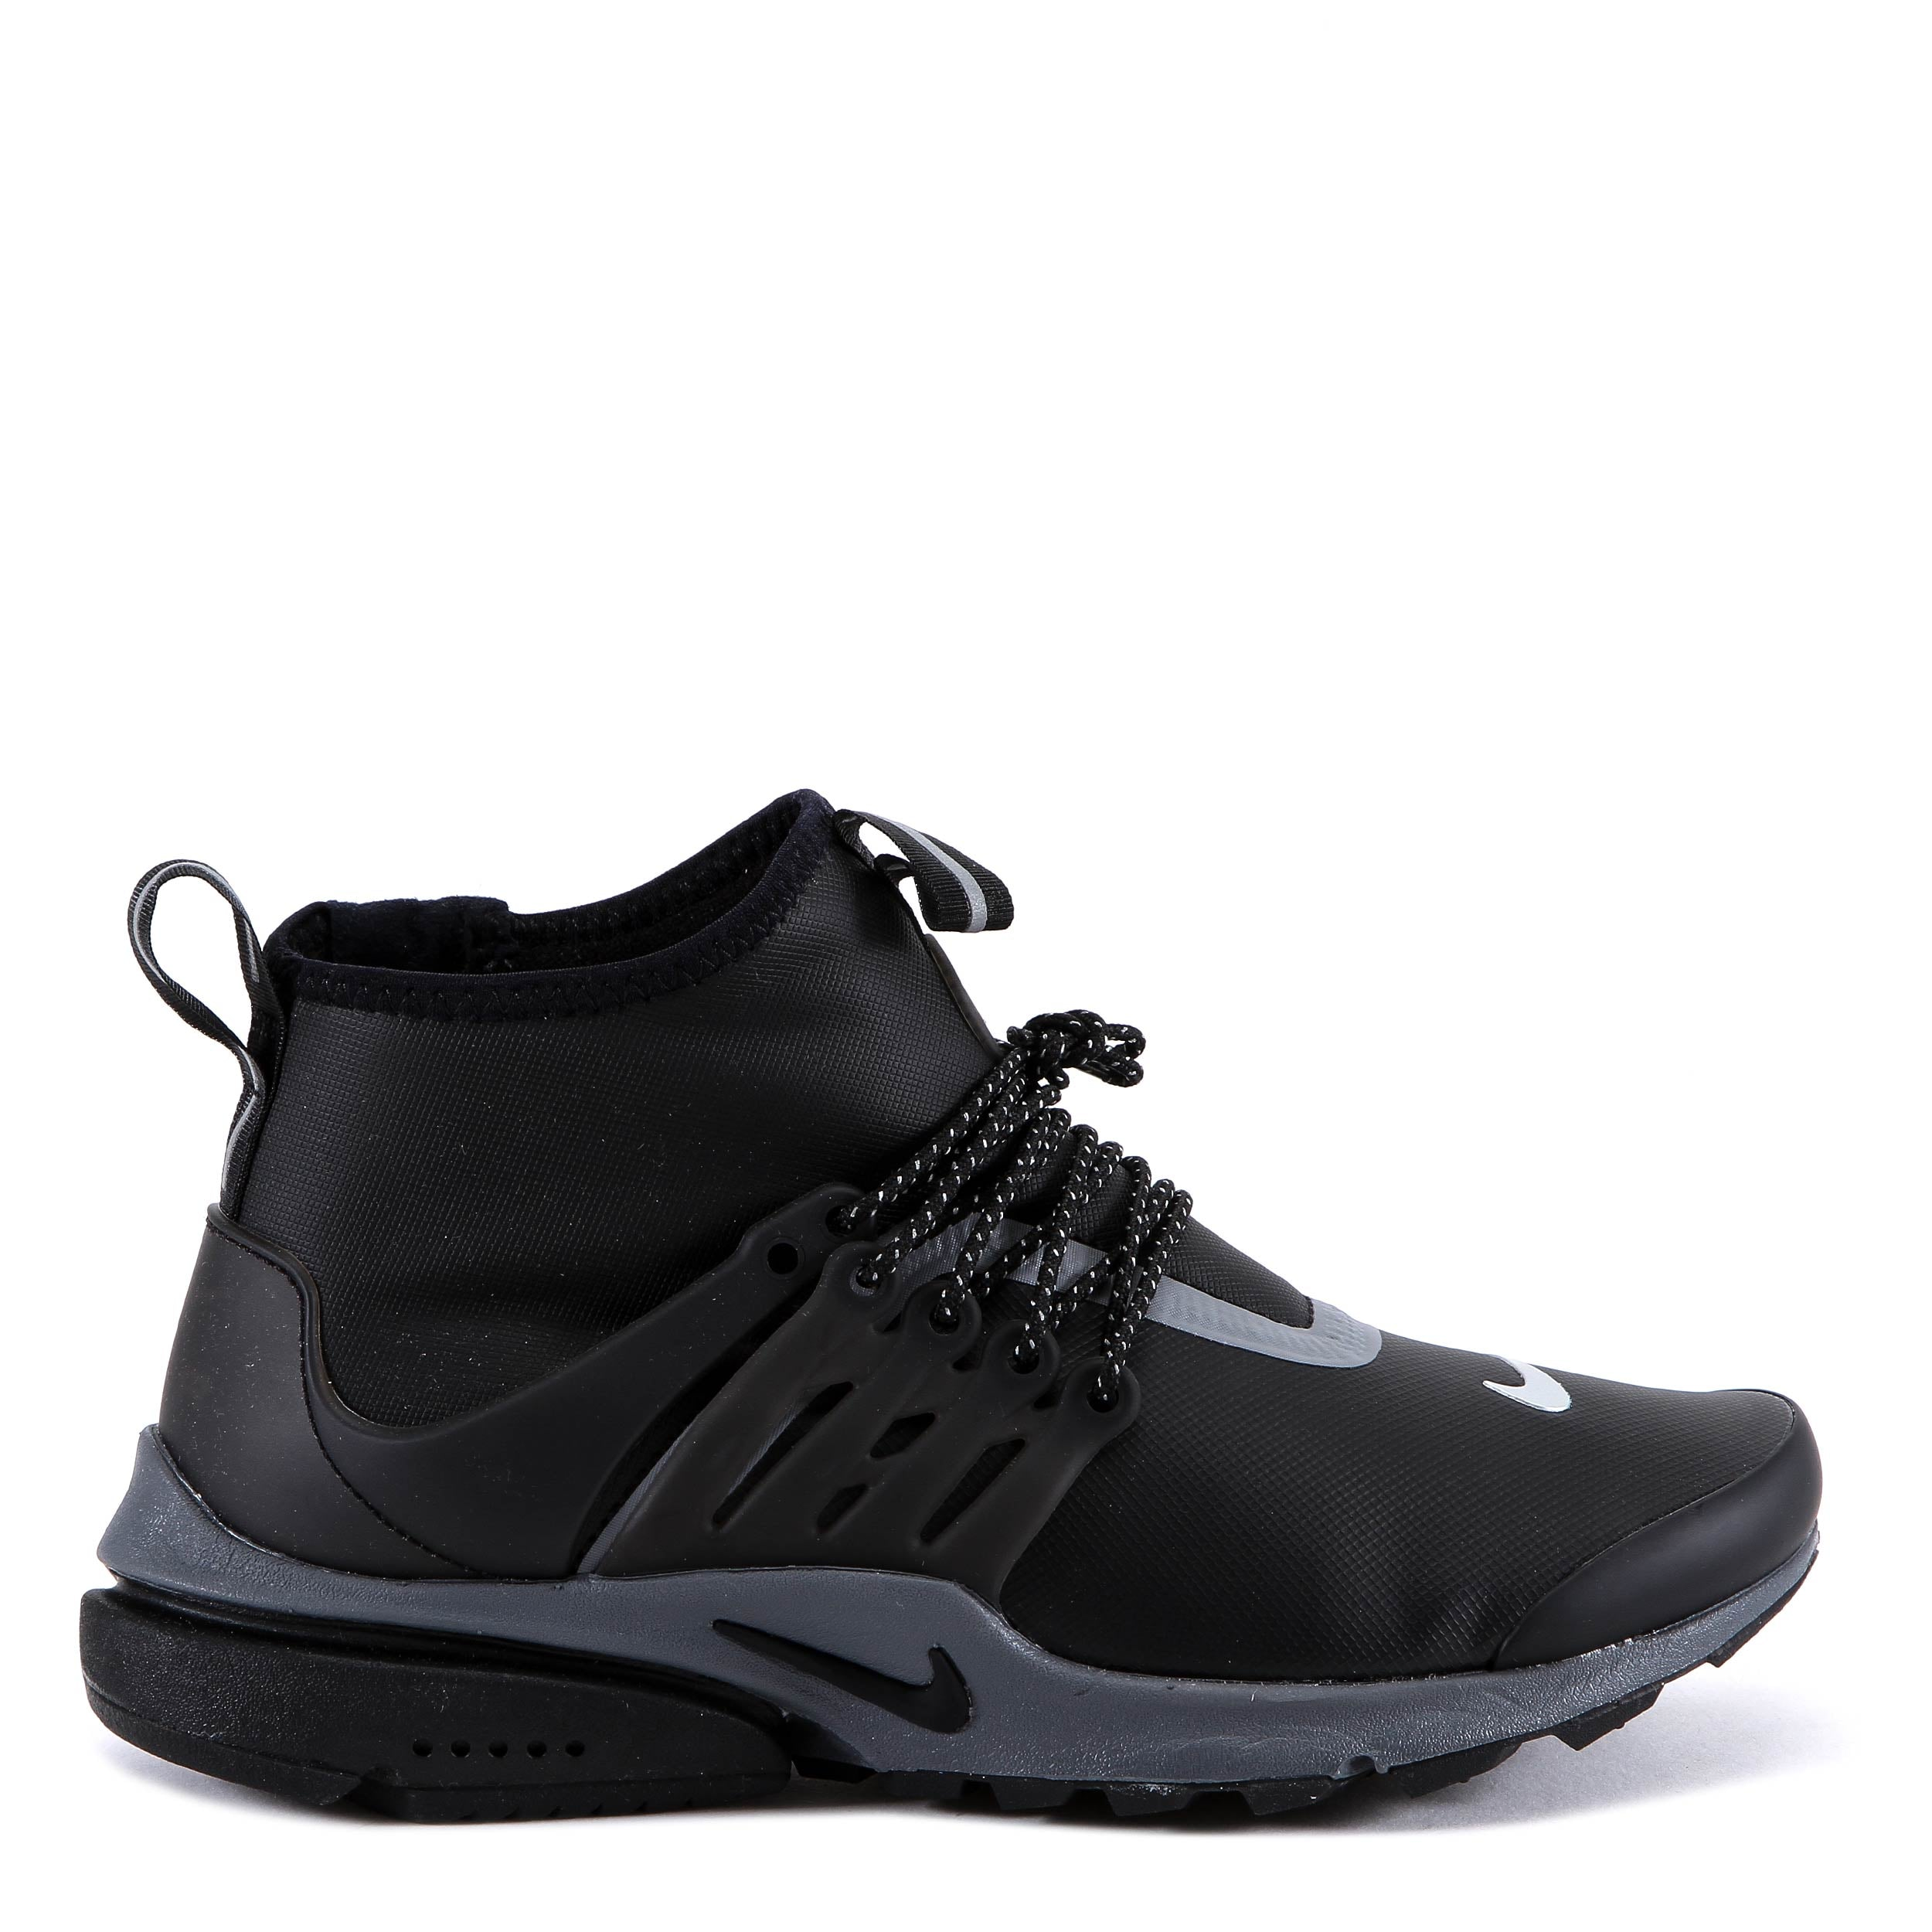 best cheap f167f 53781 ... authentic nike air presto mid utility sneakers in black 04273 81dd0